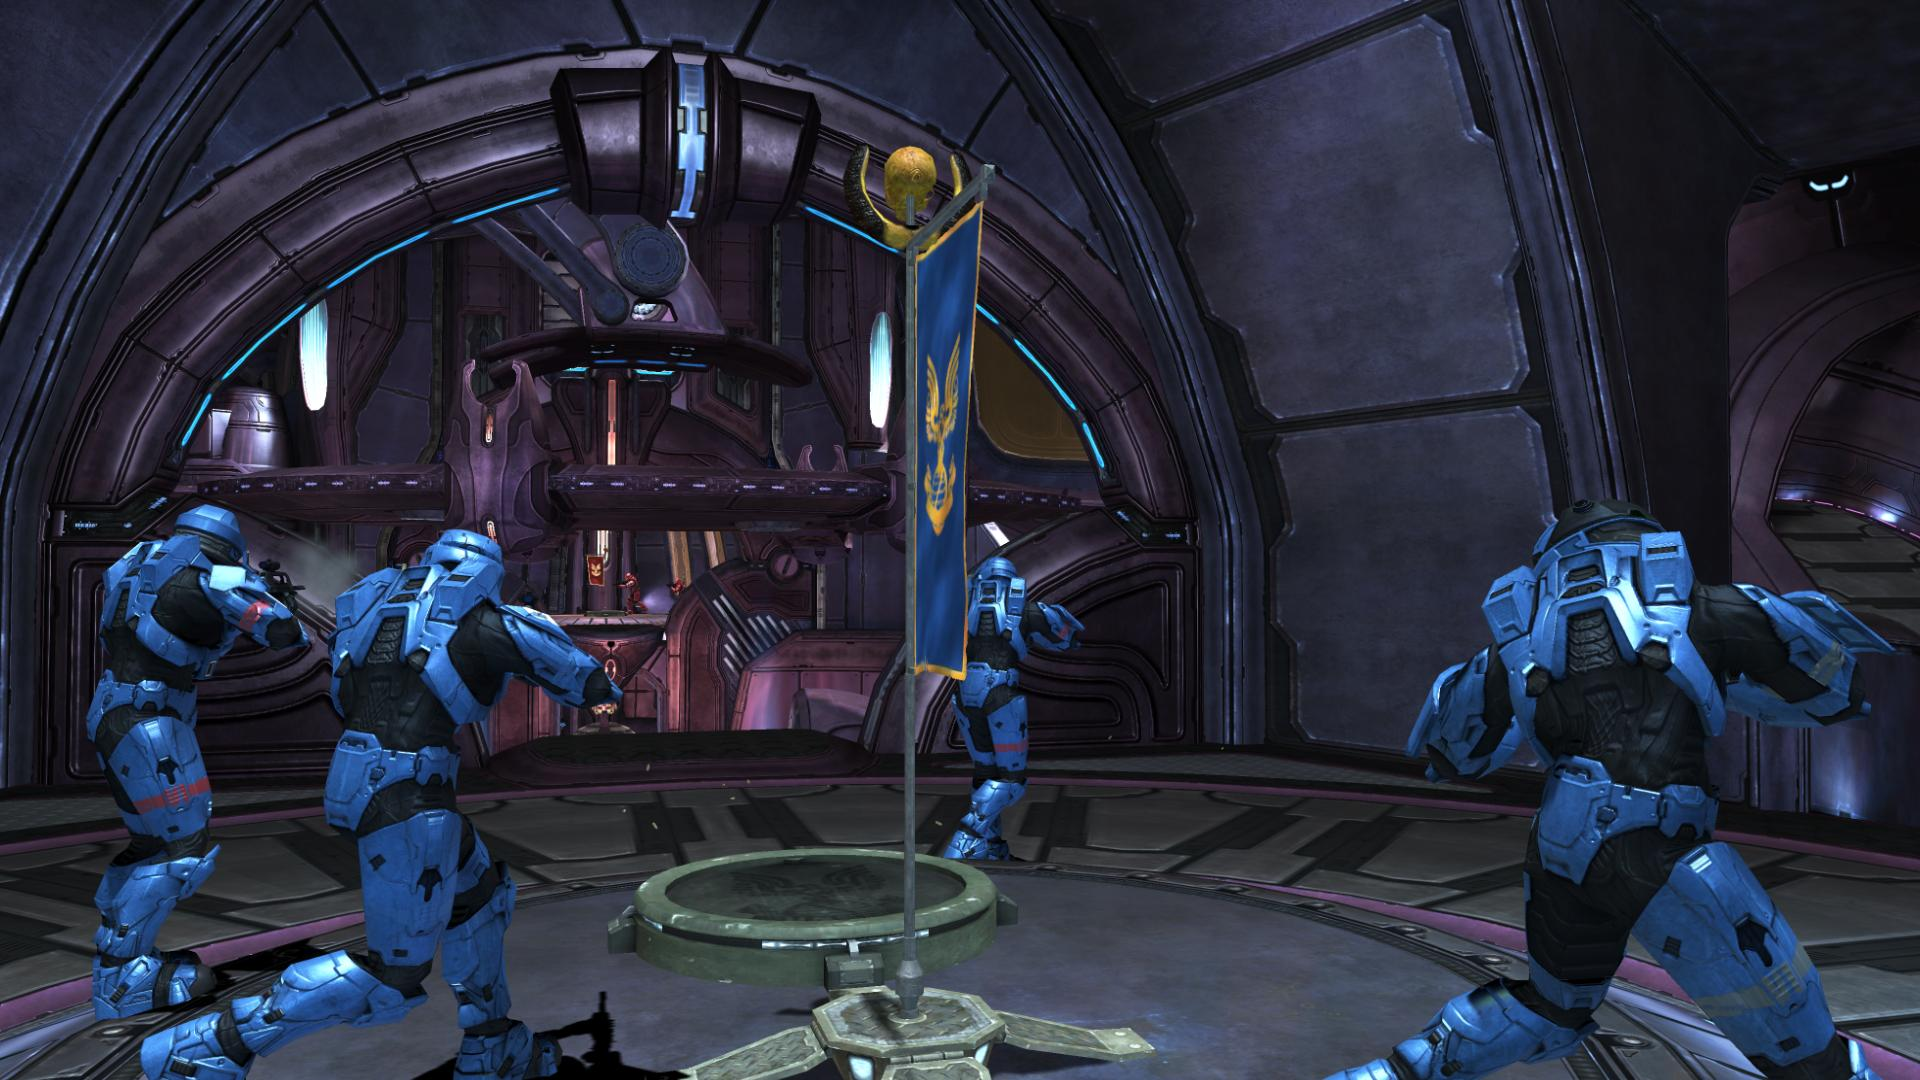 halo 2 multiplayer demo: